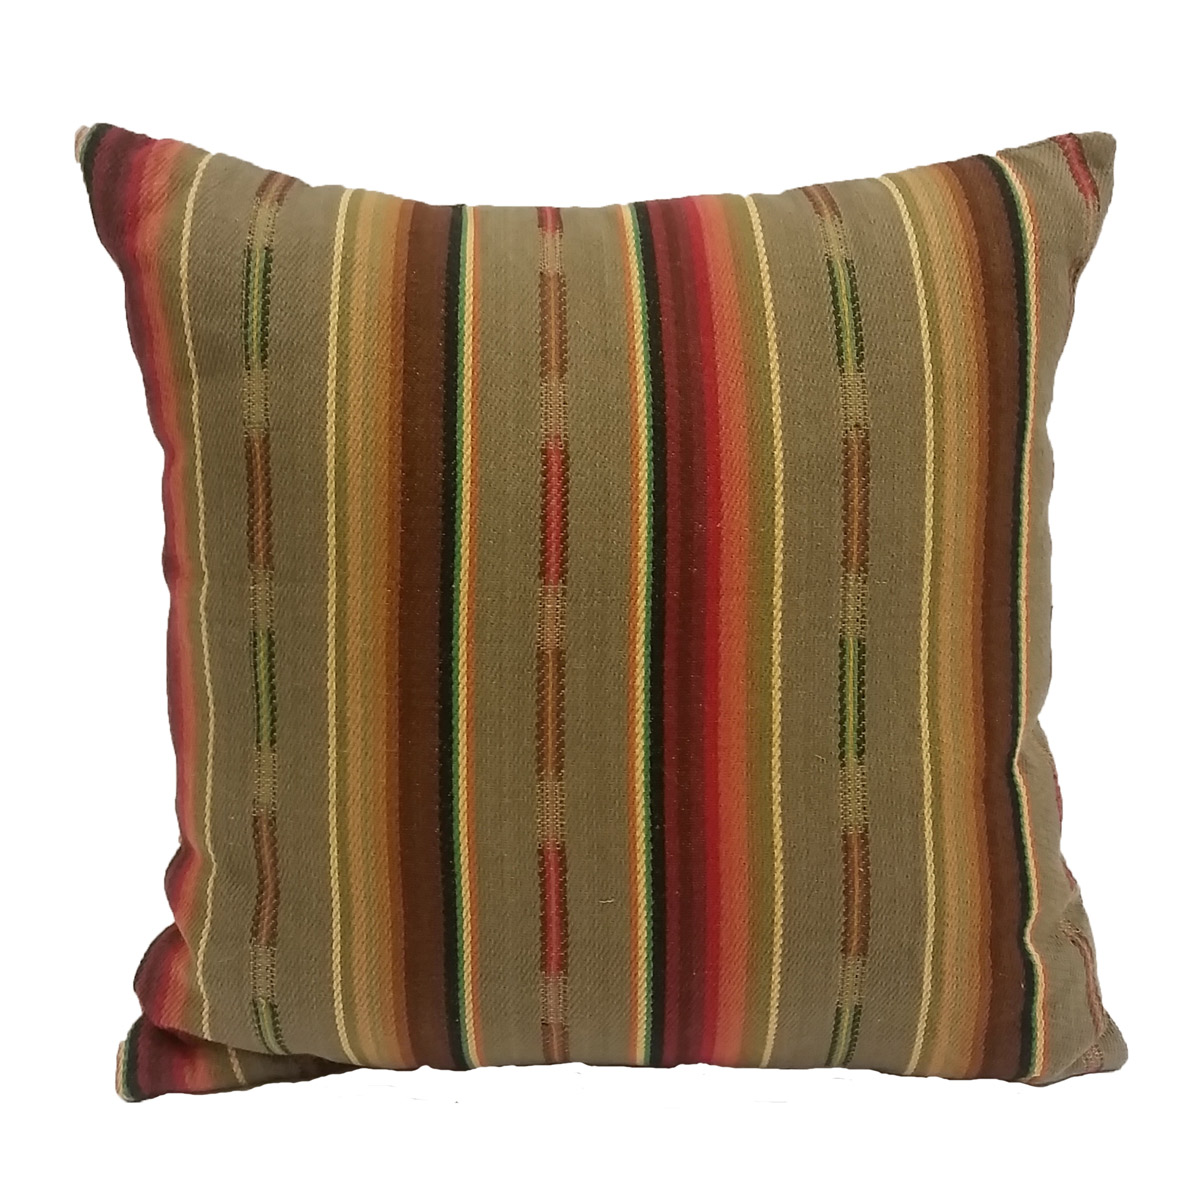 Sand Serape Pillow - 18 x 18